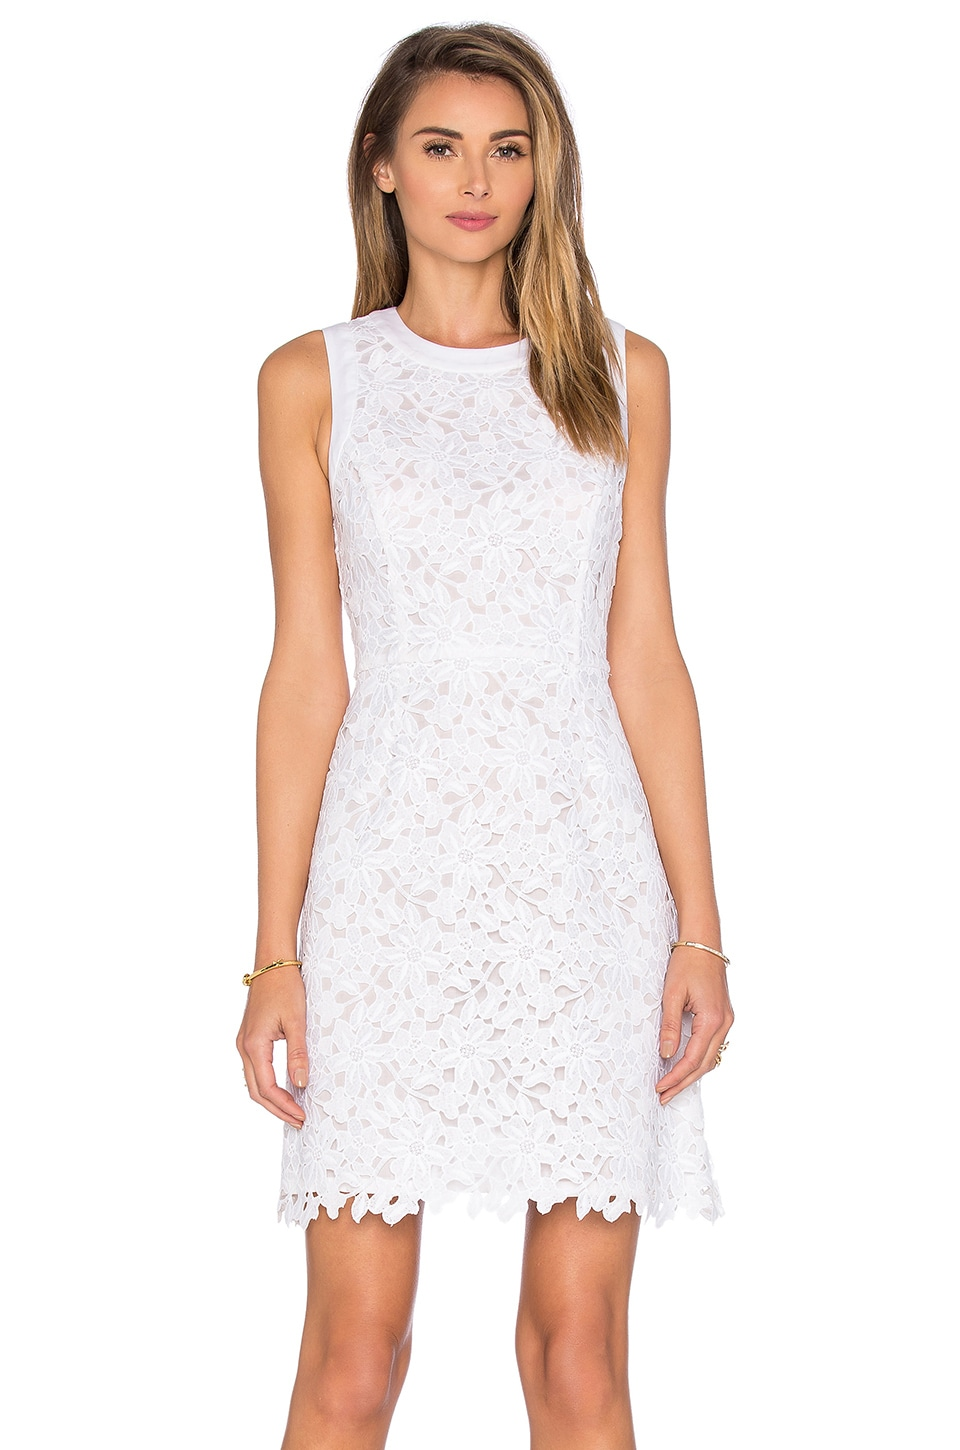 kate spade new york Floral Lace Mini Dress in Fresh White